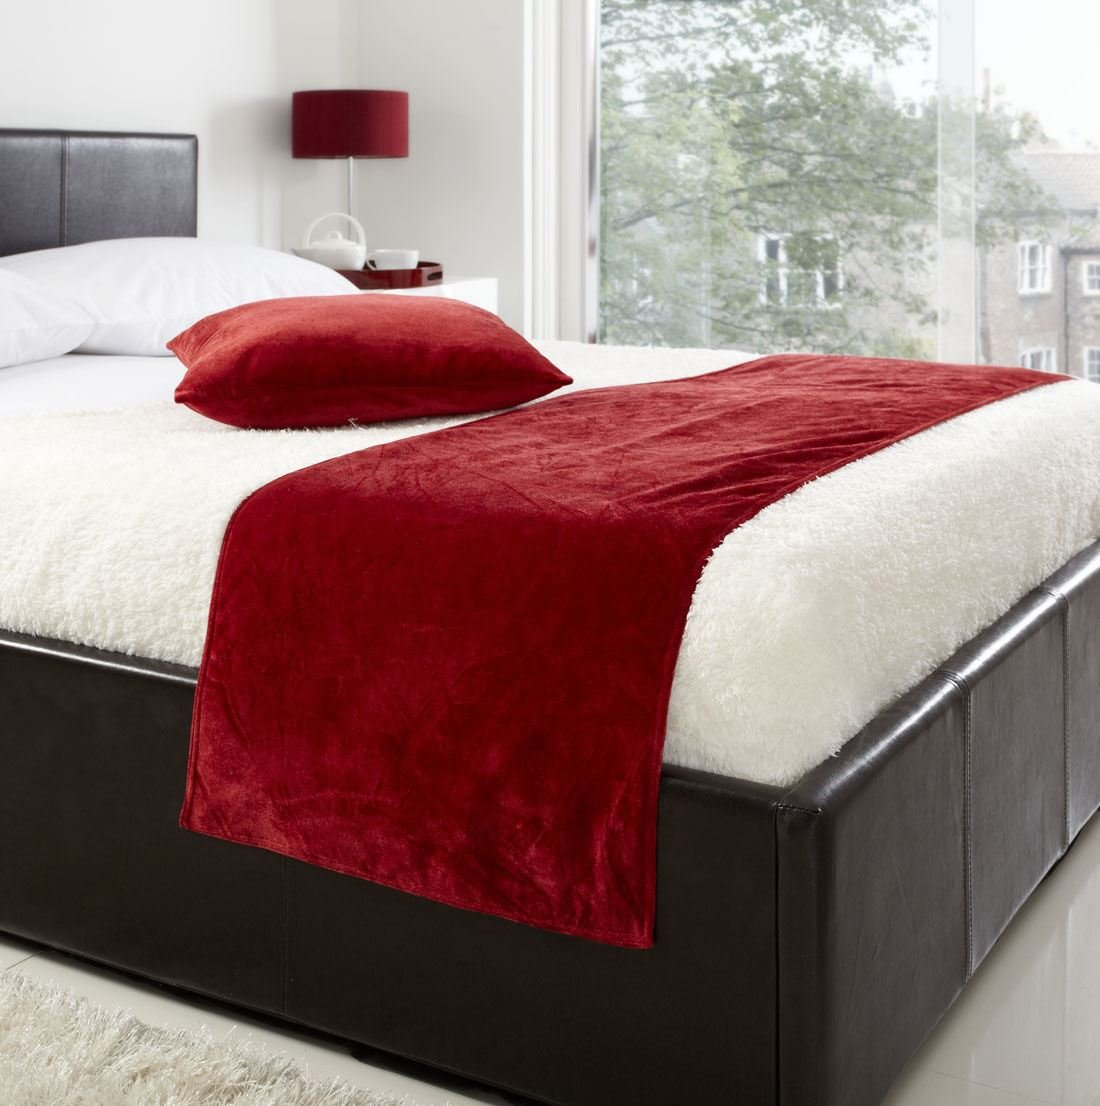 VENICE RED 19X78 DEEP PILE VELVET BED RUNNER #TEVLEV *AS* 19X78 DEEP PILE VELVET BED RUNNER & 18'' CUSHION COVER #TEVLEV *AS*